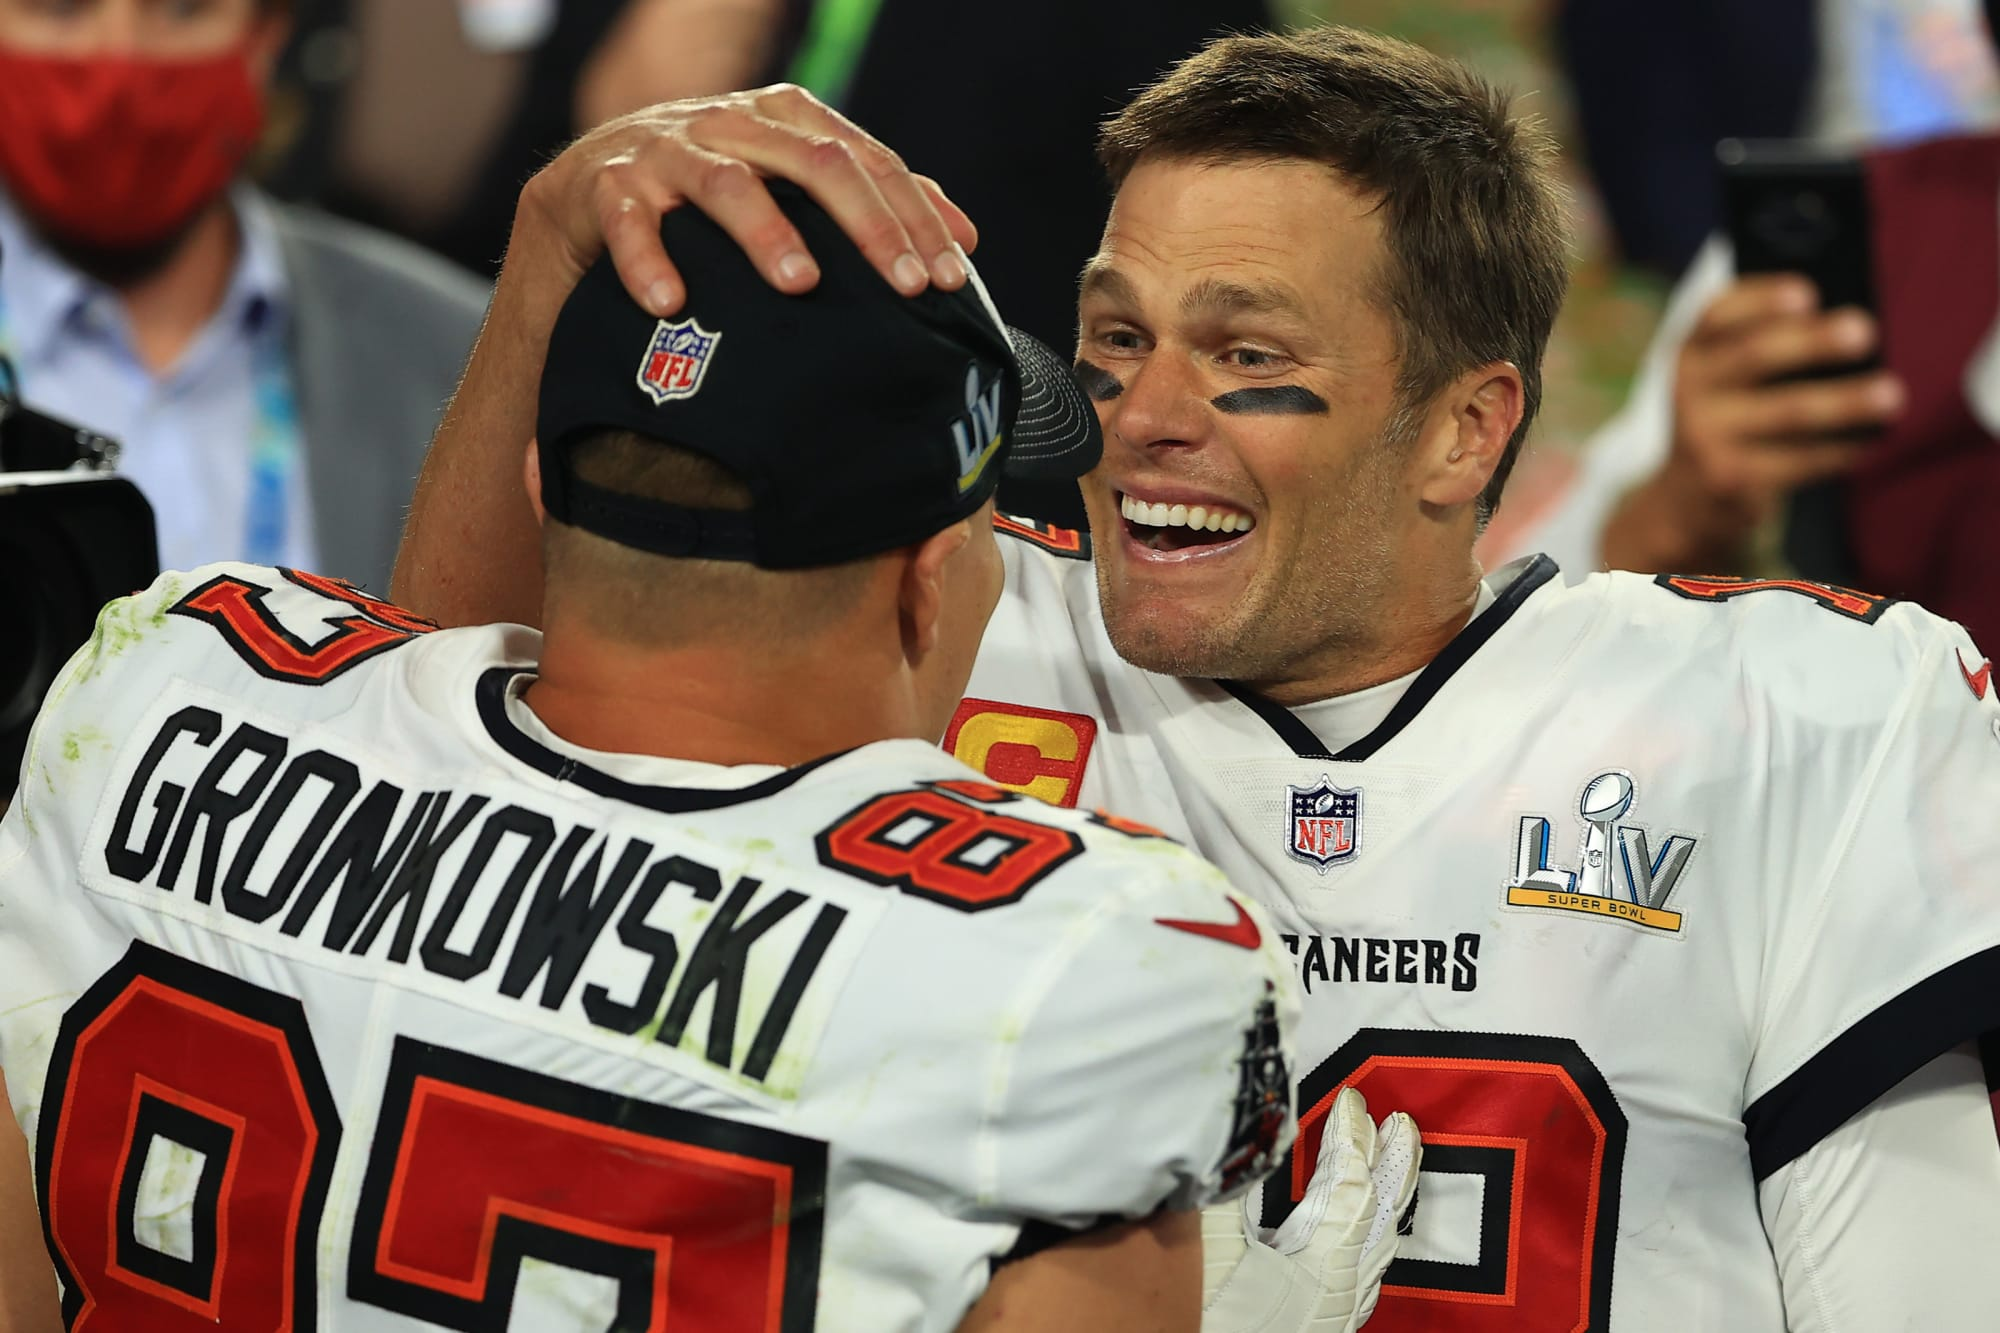 Tom Brady and the Buccaneers robbed of yet another award